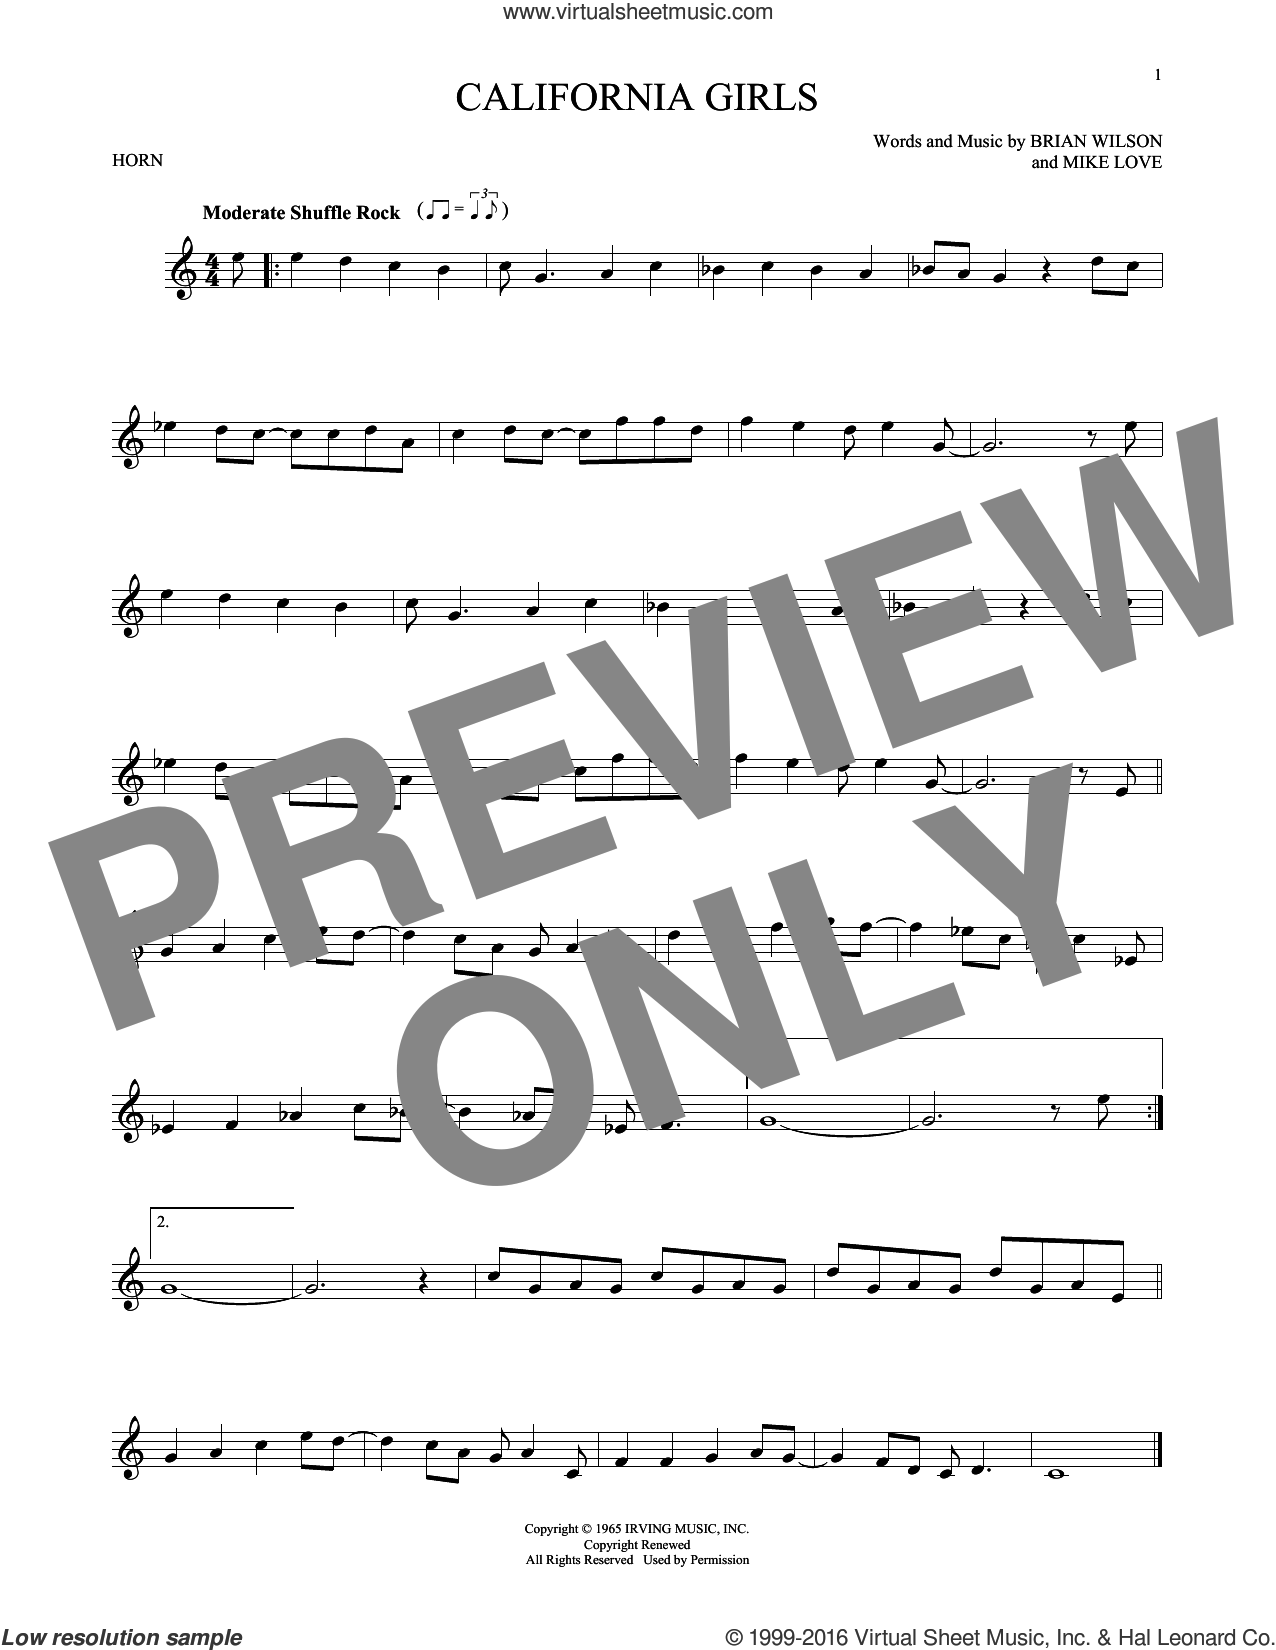 California Girls sheet music for horn solo by The Beach Boys, David Lee Roth, Brian Wilson and Mike Love, intermediate skill level